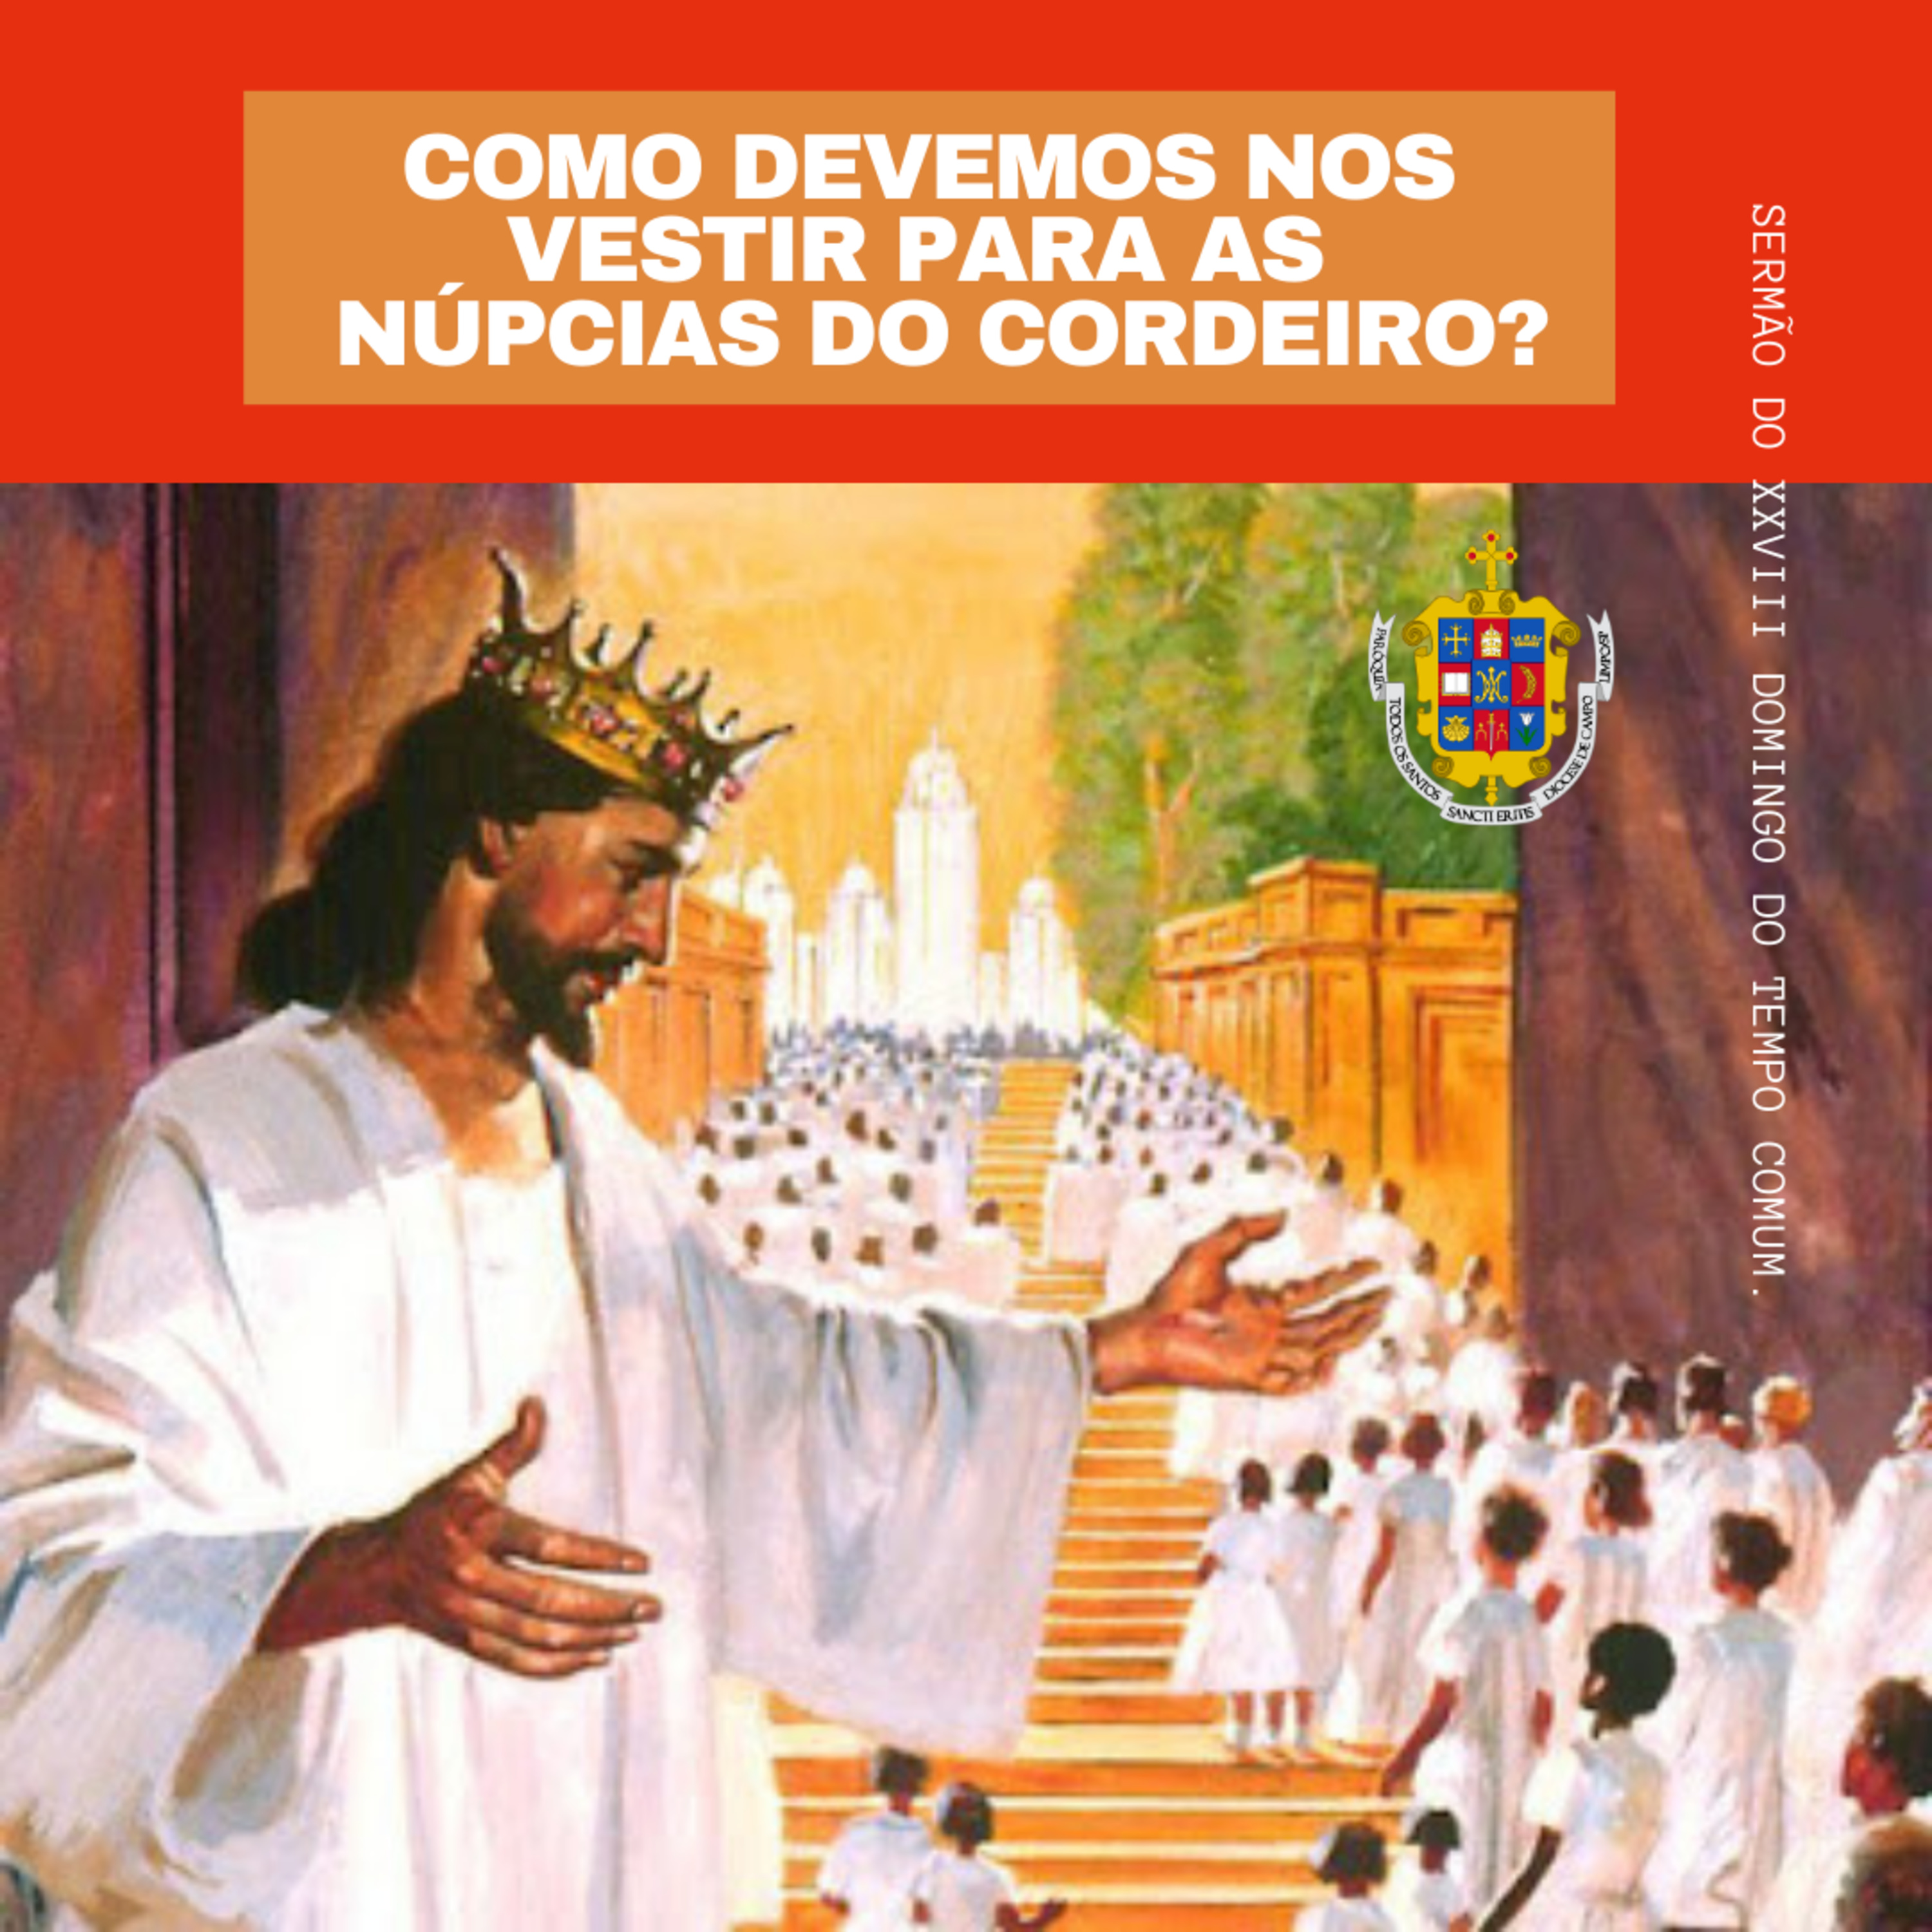 1-167. Como devemos nos vestir para as núpcias do Cordeiro? - Sermão do XXVIII Domingo do Tempo Comum.